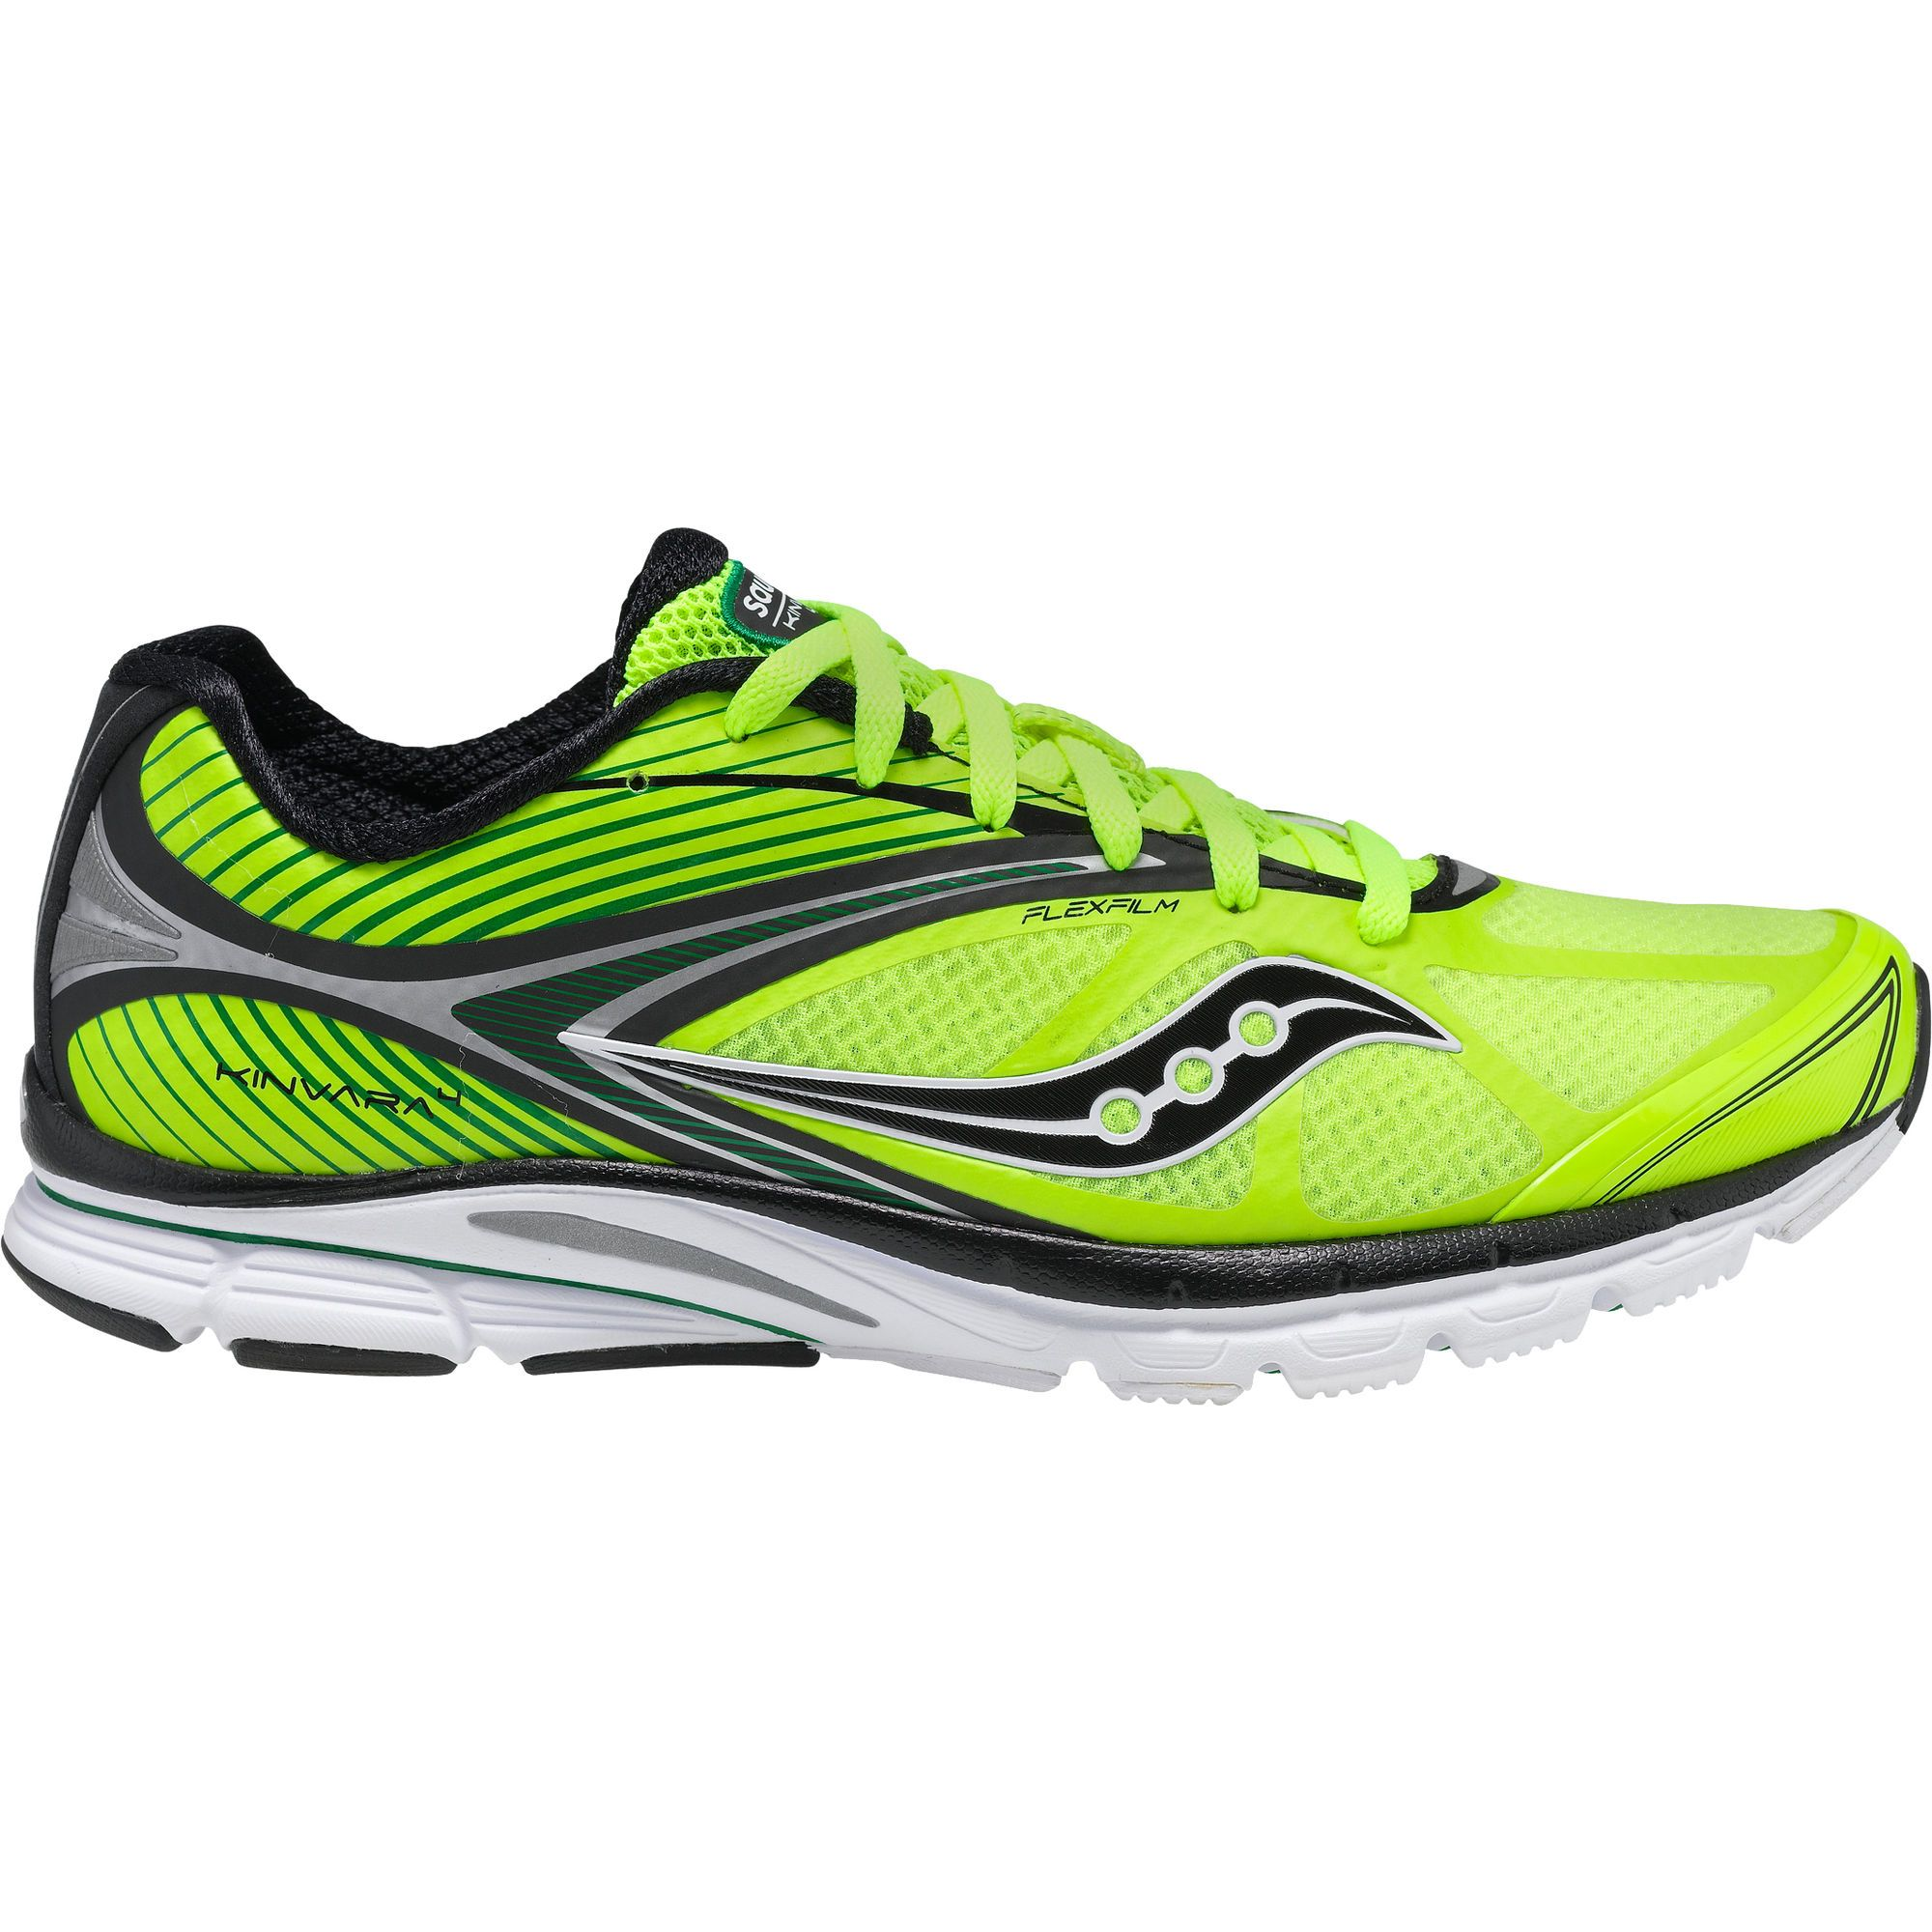 2fd4f8fd4444 Saucony Kinvara 4 The Saucony Kinvara 4 are one sexy pair of running shoes!  Not only are they nice to look at but they also rate well for pain releif  when ...